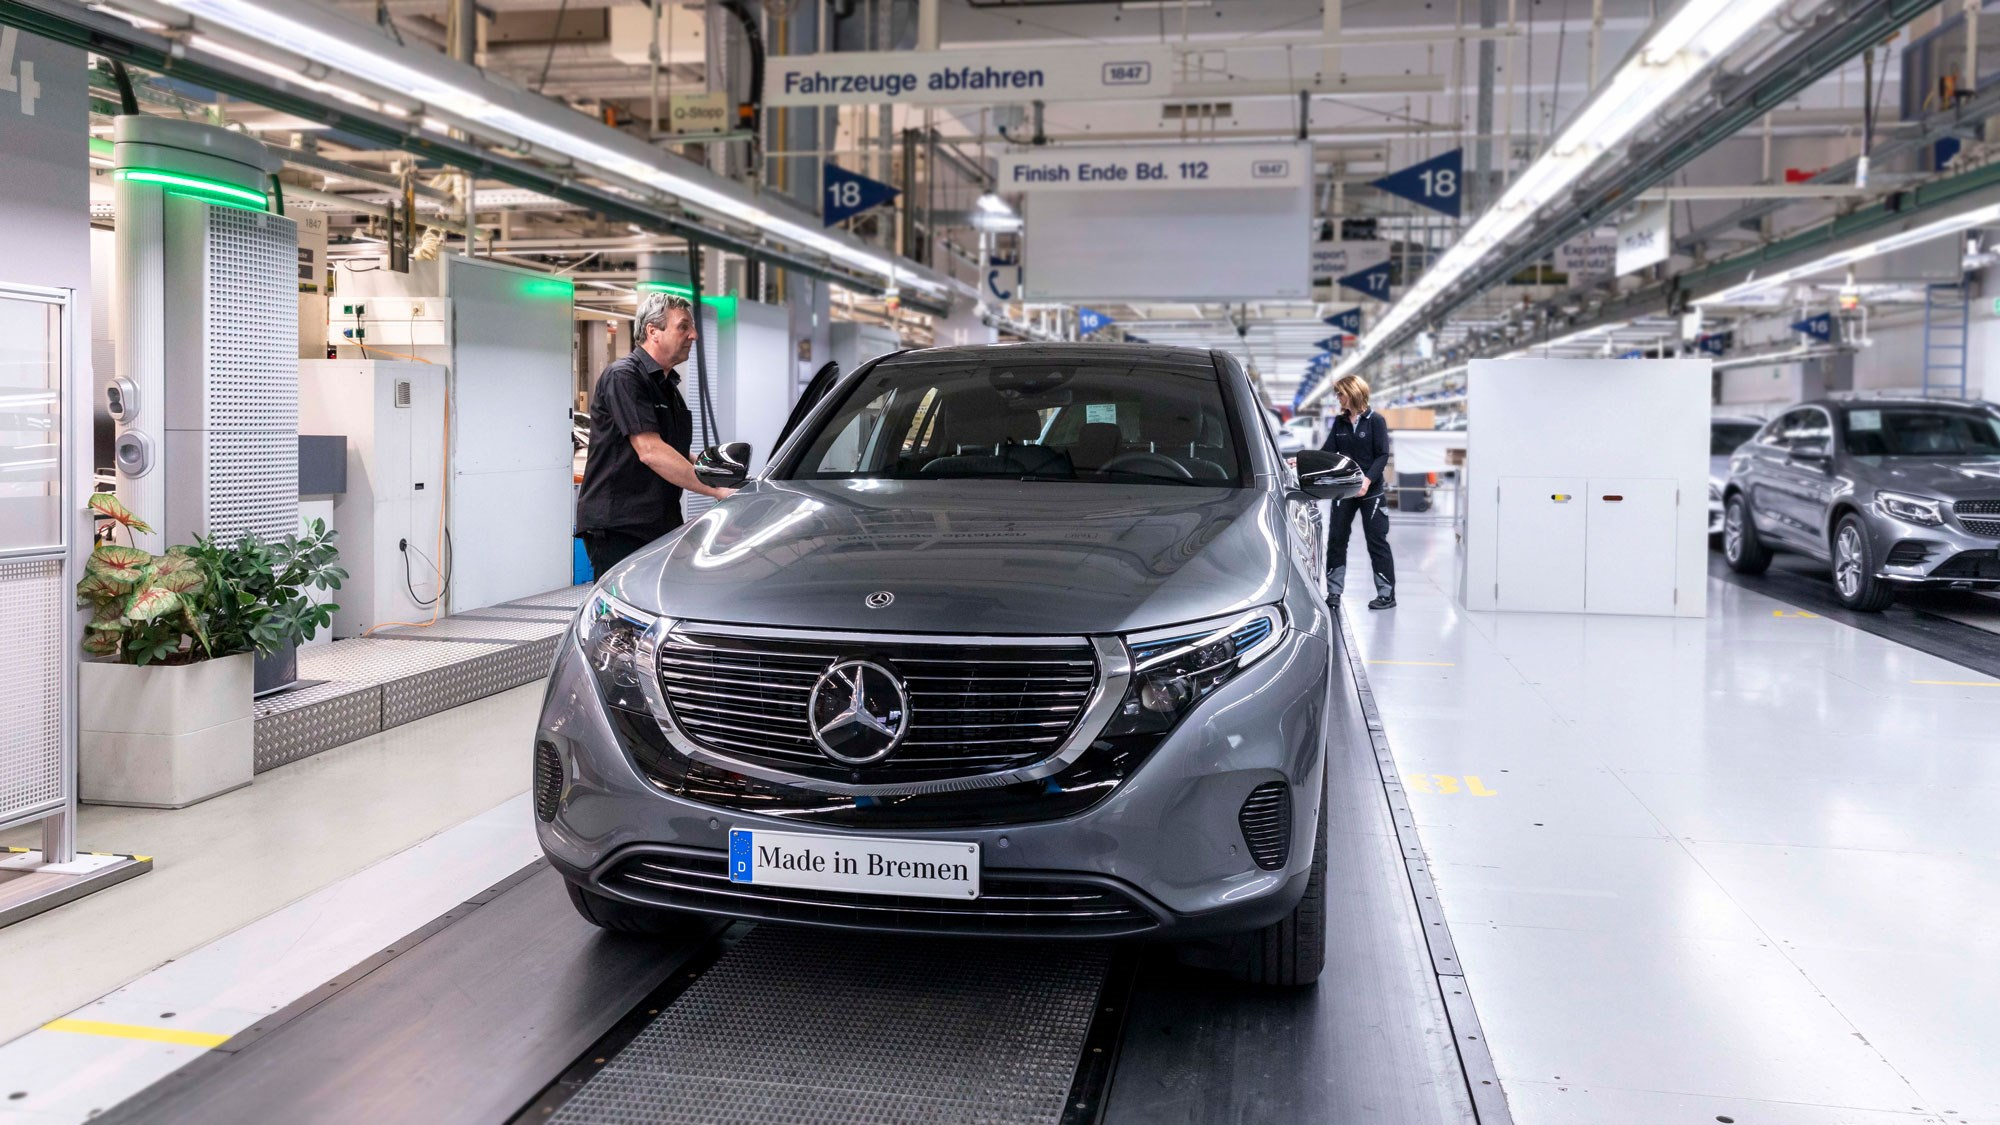 Mercedes Eqc Electric Suv Rolls Off The Production Line